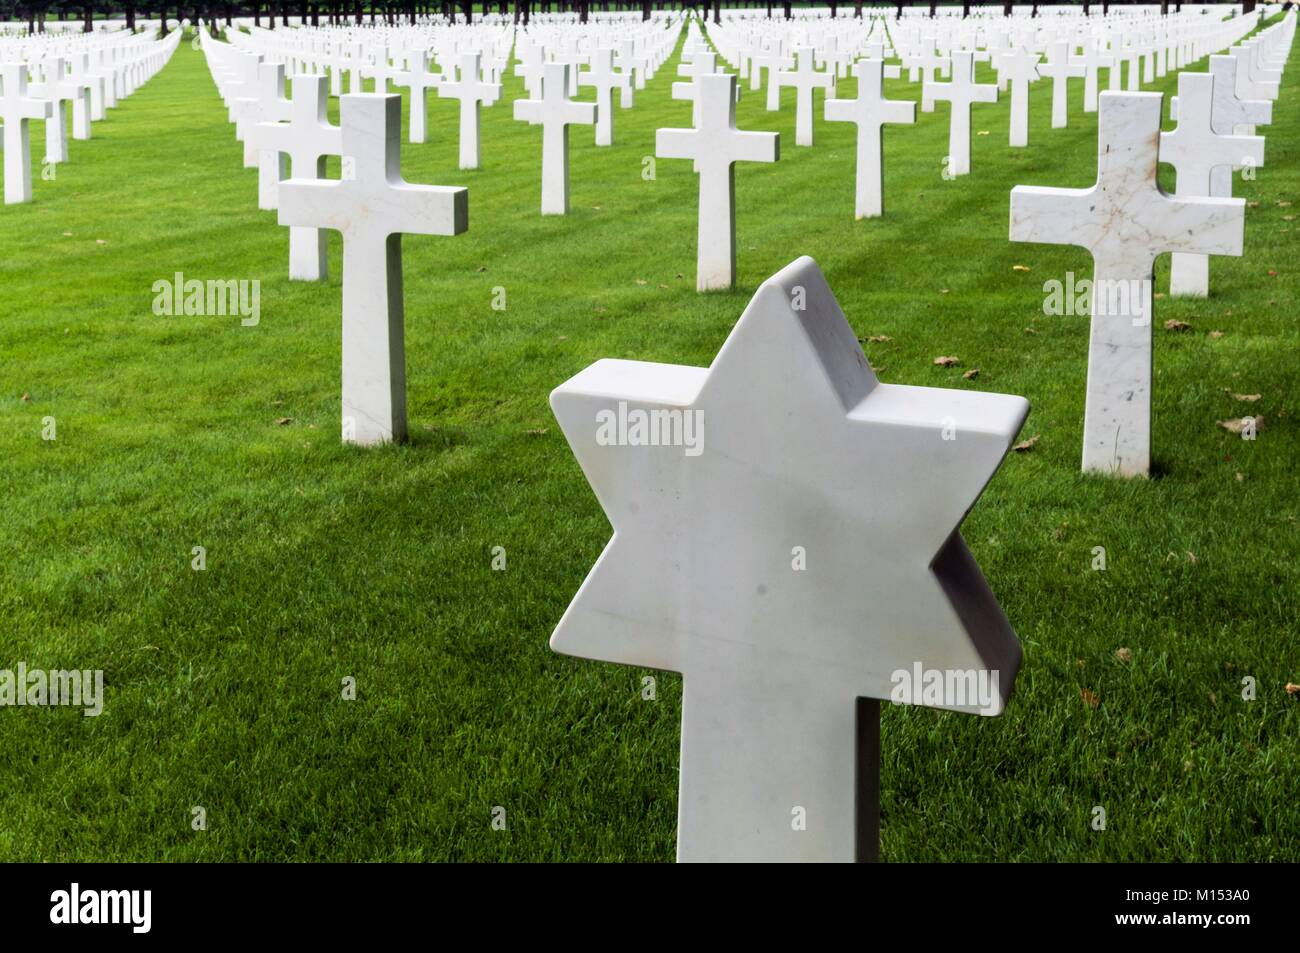 France, Meuse, amrican cemetary of Romagne sous Montfaucon, 12.446 graves, largest US miltary cemetary in Europe - Stock Image